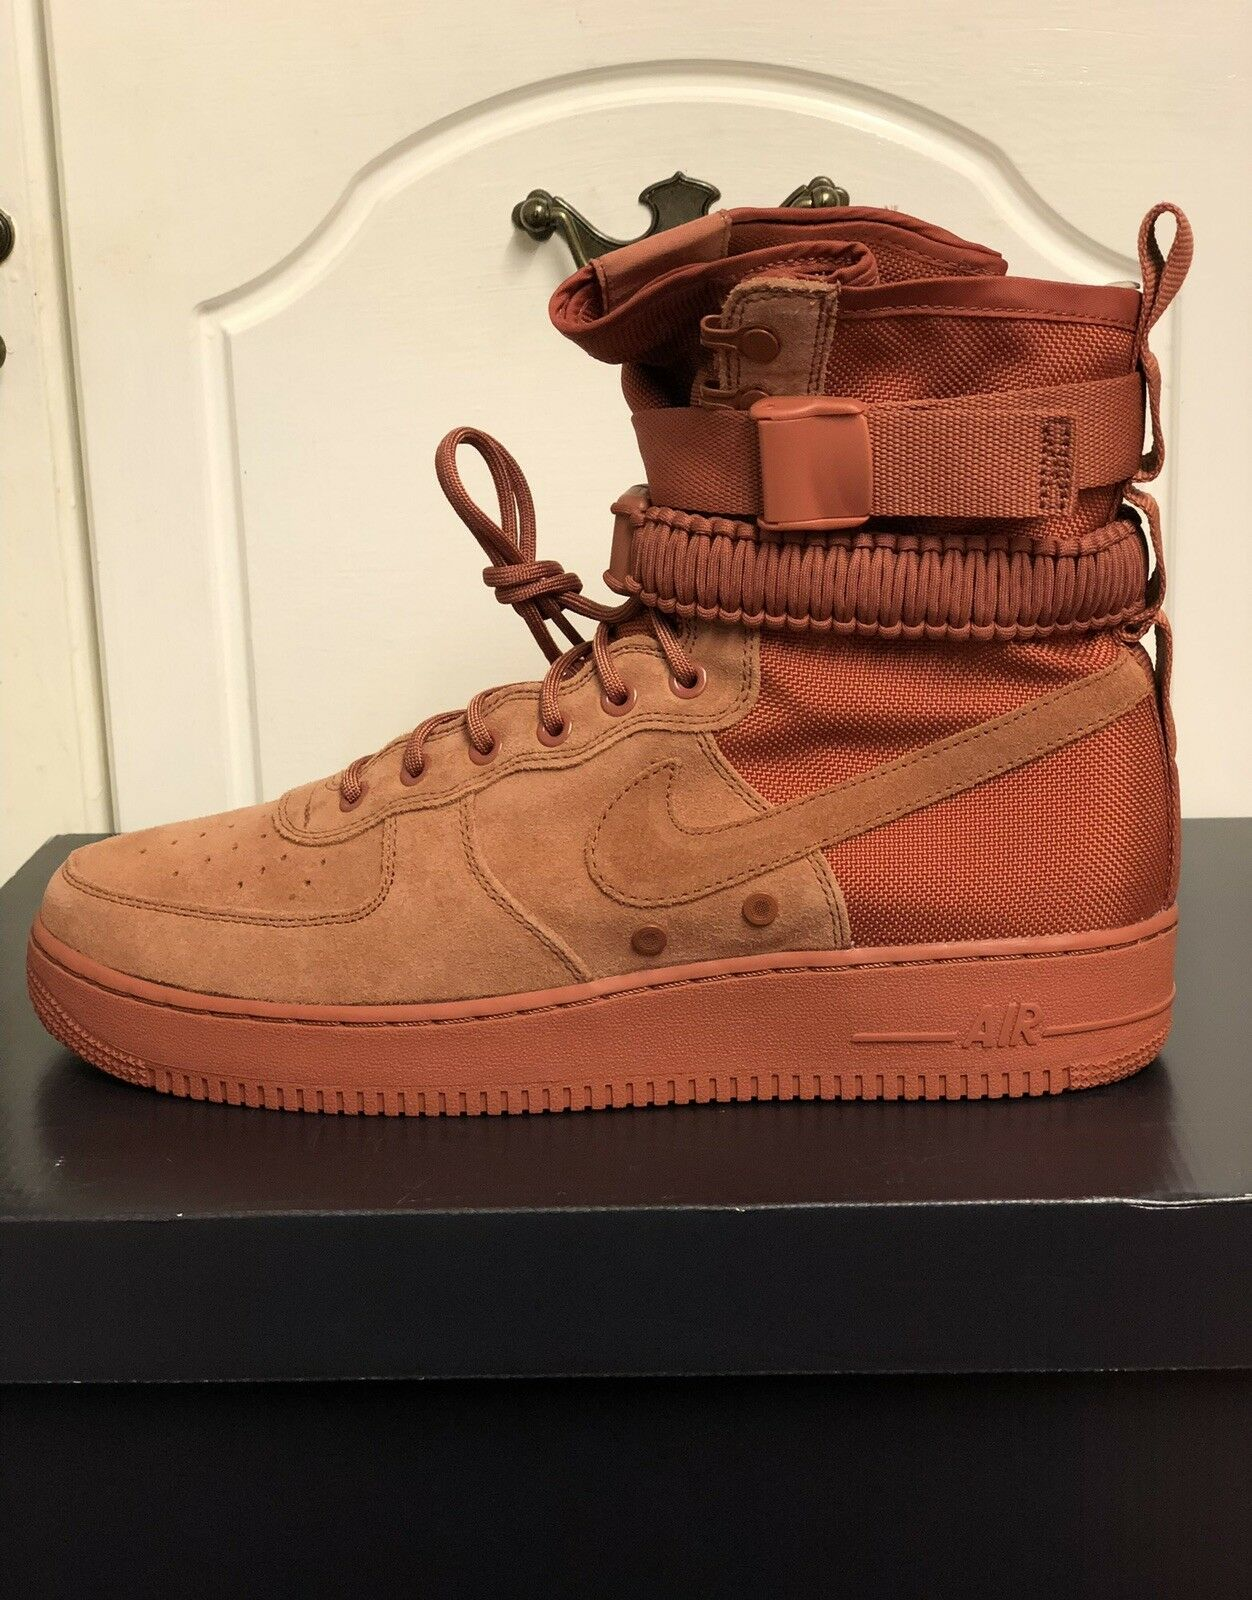 NIKE SF AF1 SPECIAL FIELD AIR FORCE 1 MENS BOOT TRAINERS SHOES US11